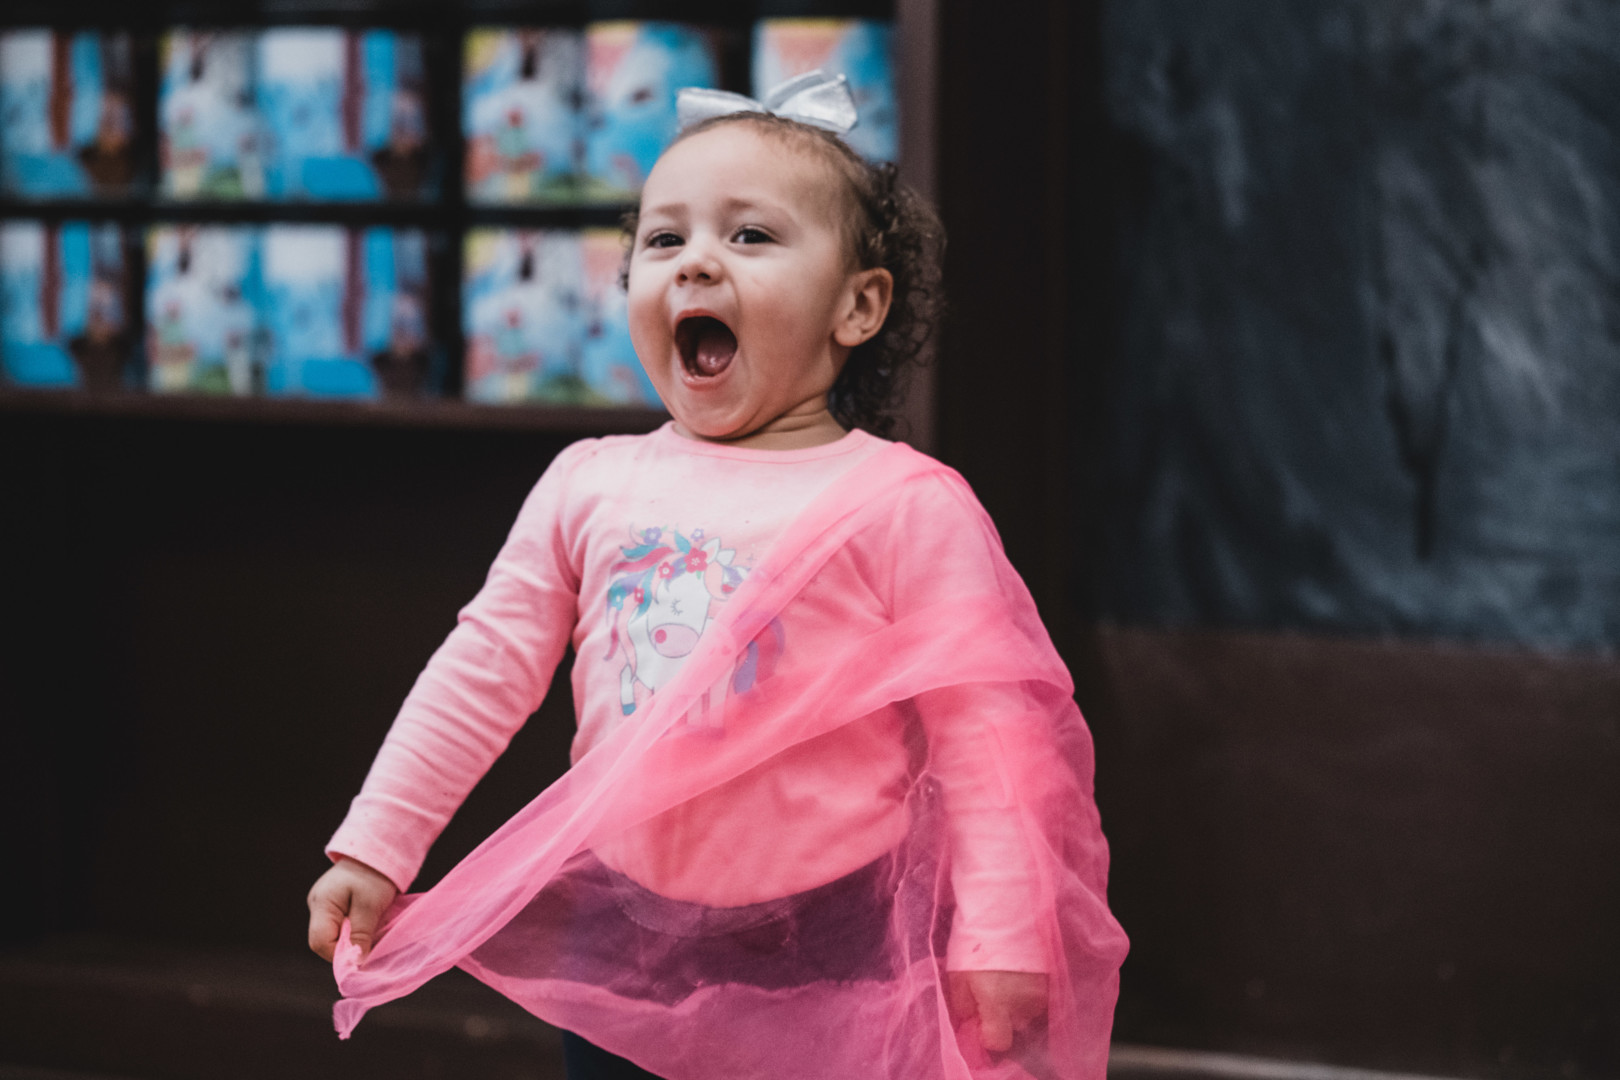 Child participating in Zumbini class plays with scarf